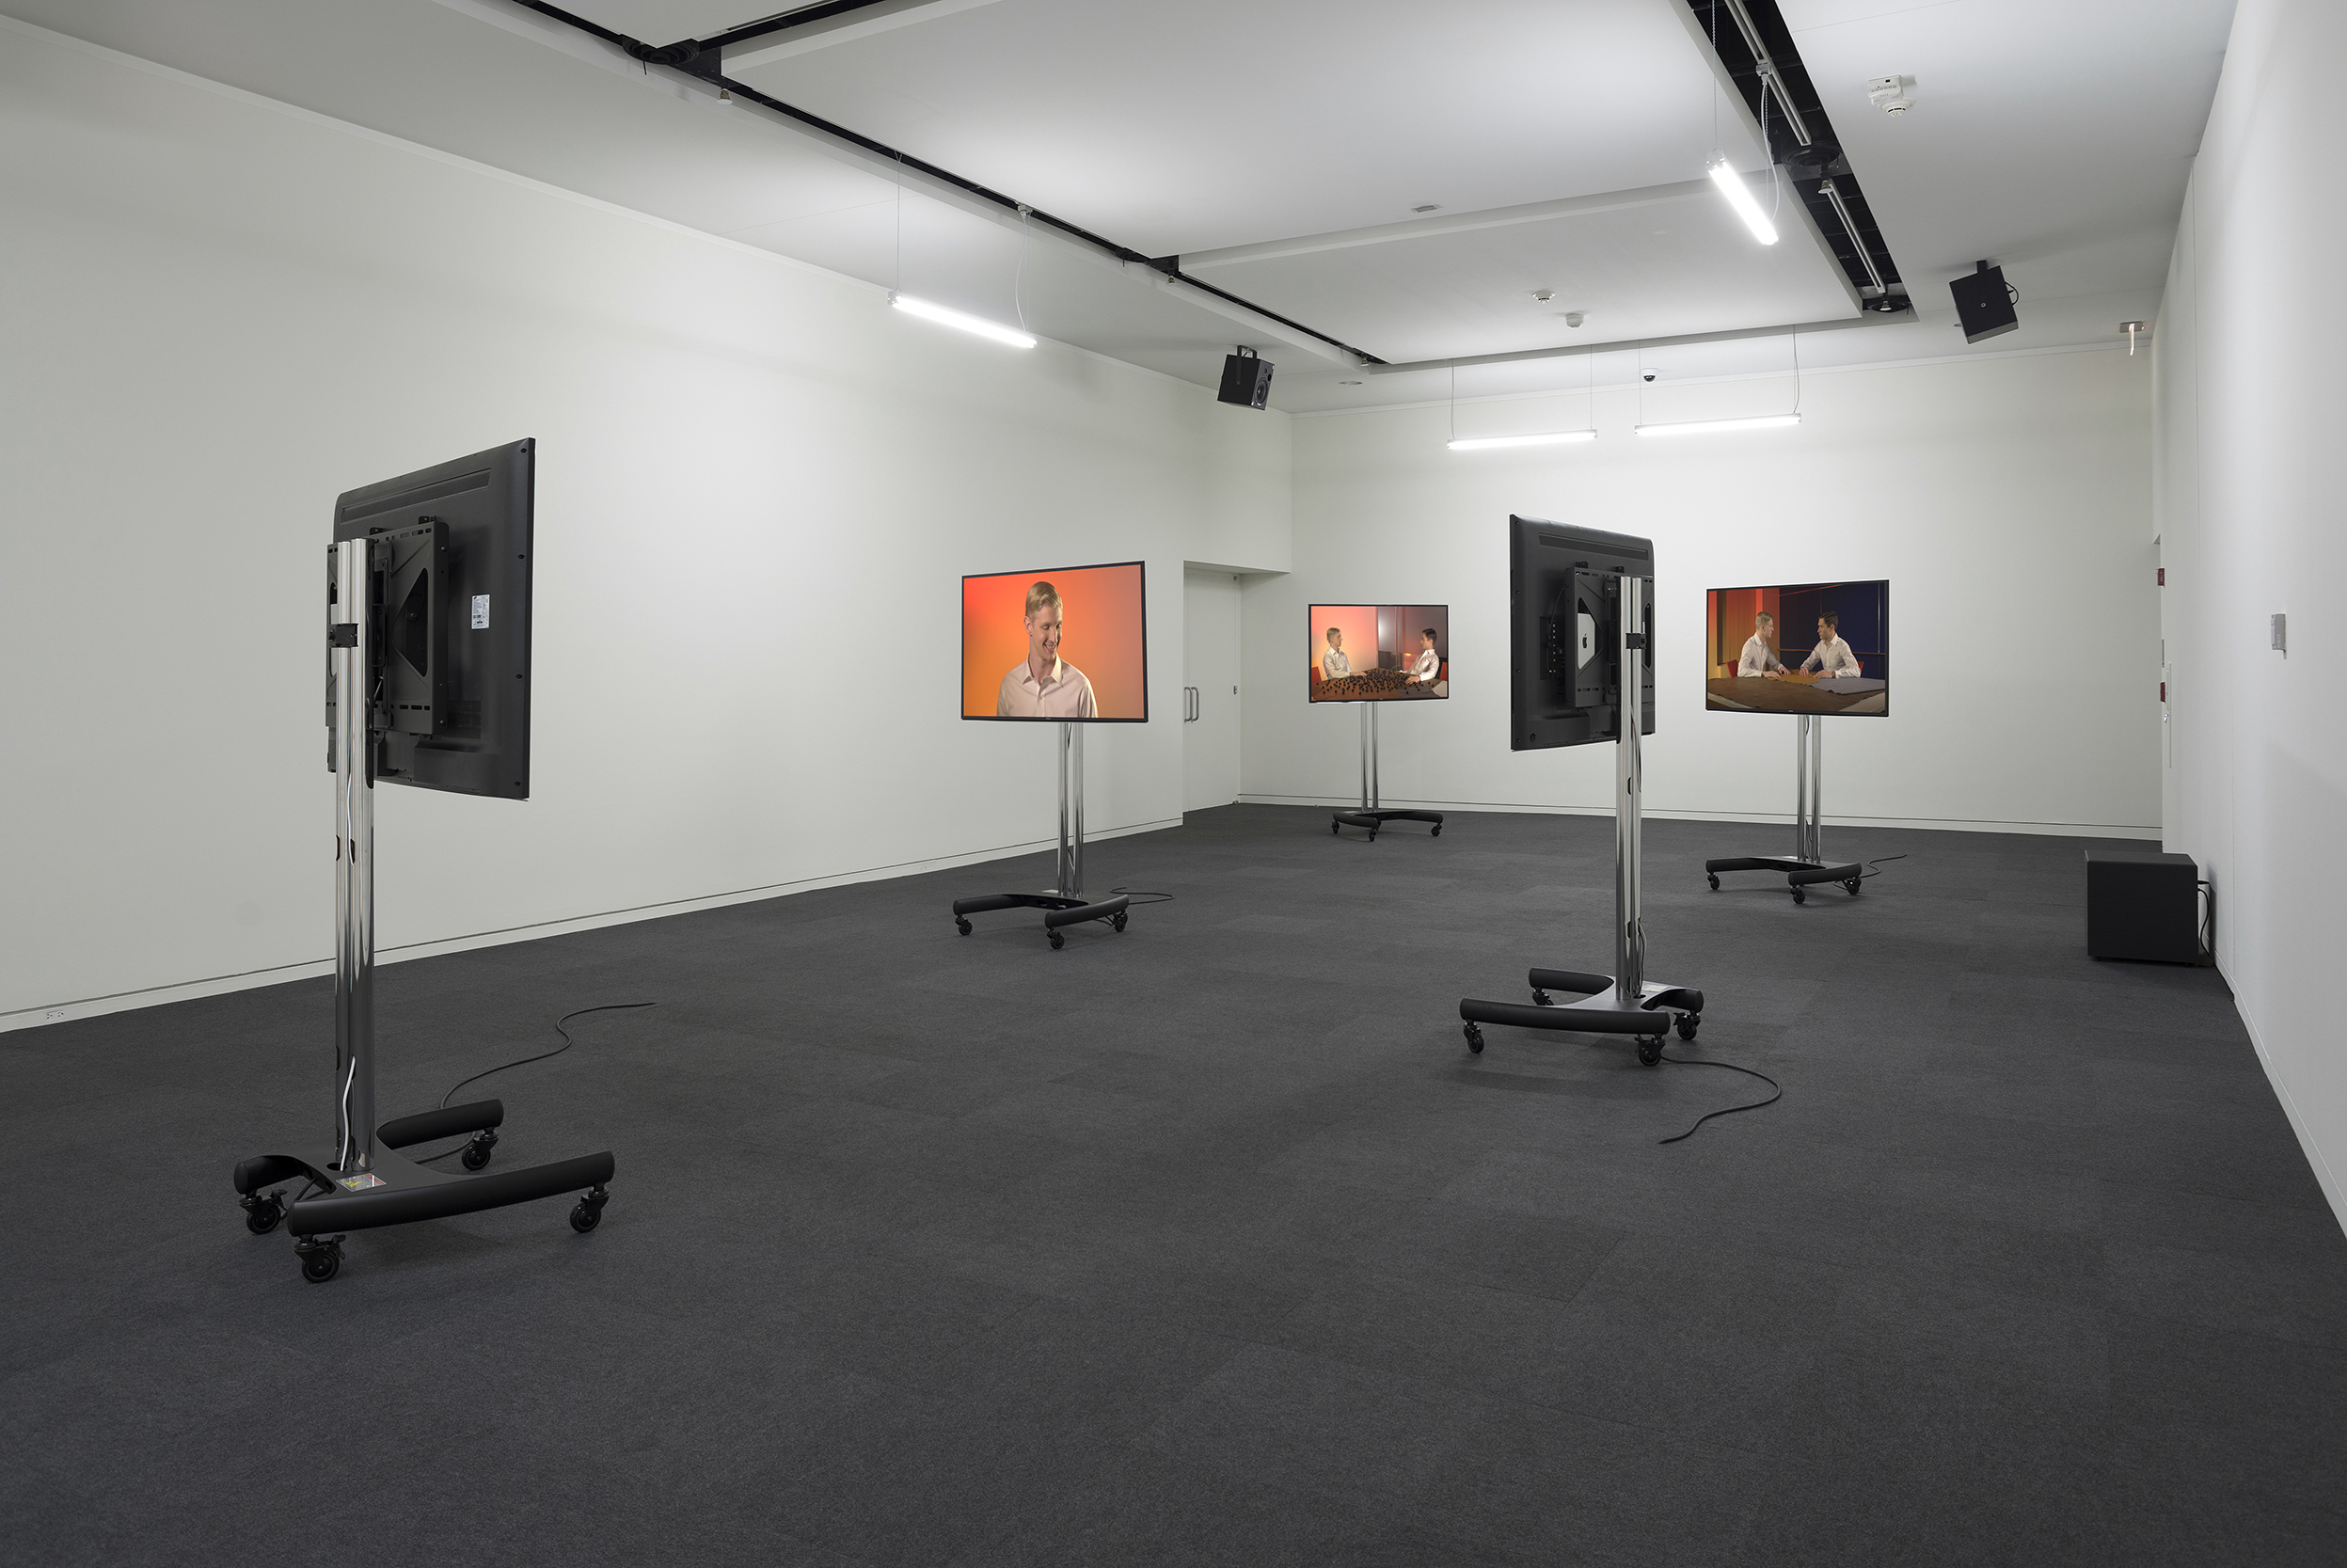 installation view of drama by Geof Oppenheimer 2014